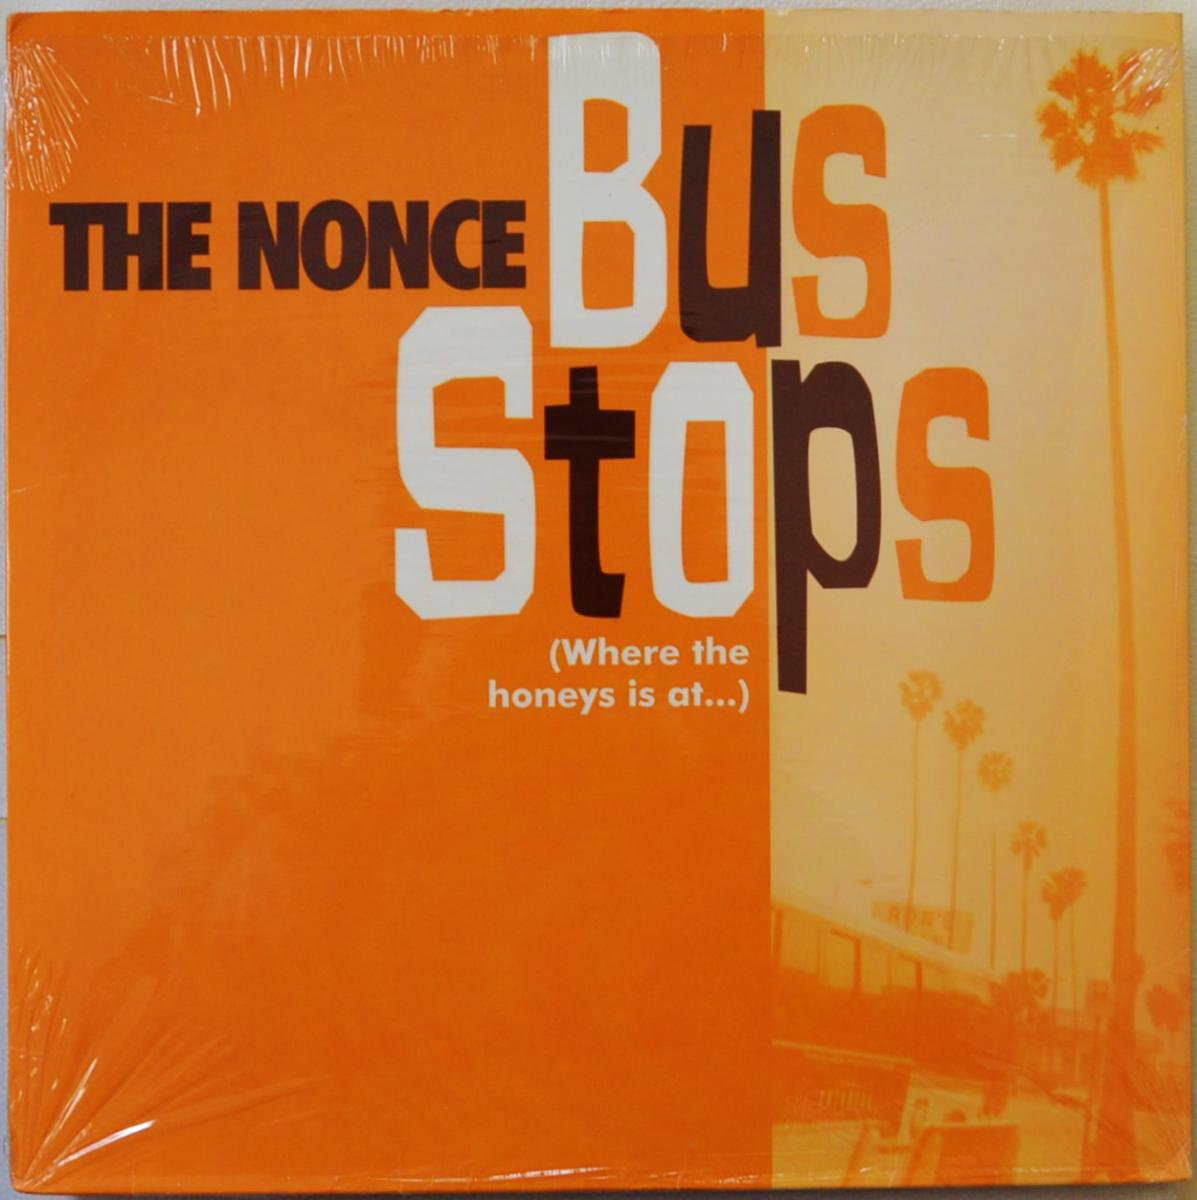 THE NONCE / BUS STOPS (WHERE THE HONEYS IS AT...) / WHO FALLS APART? (12